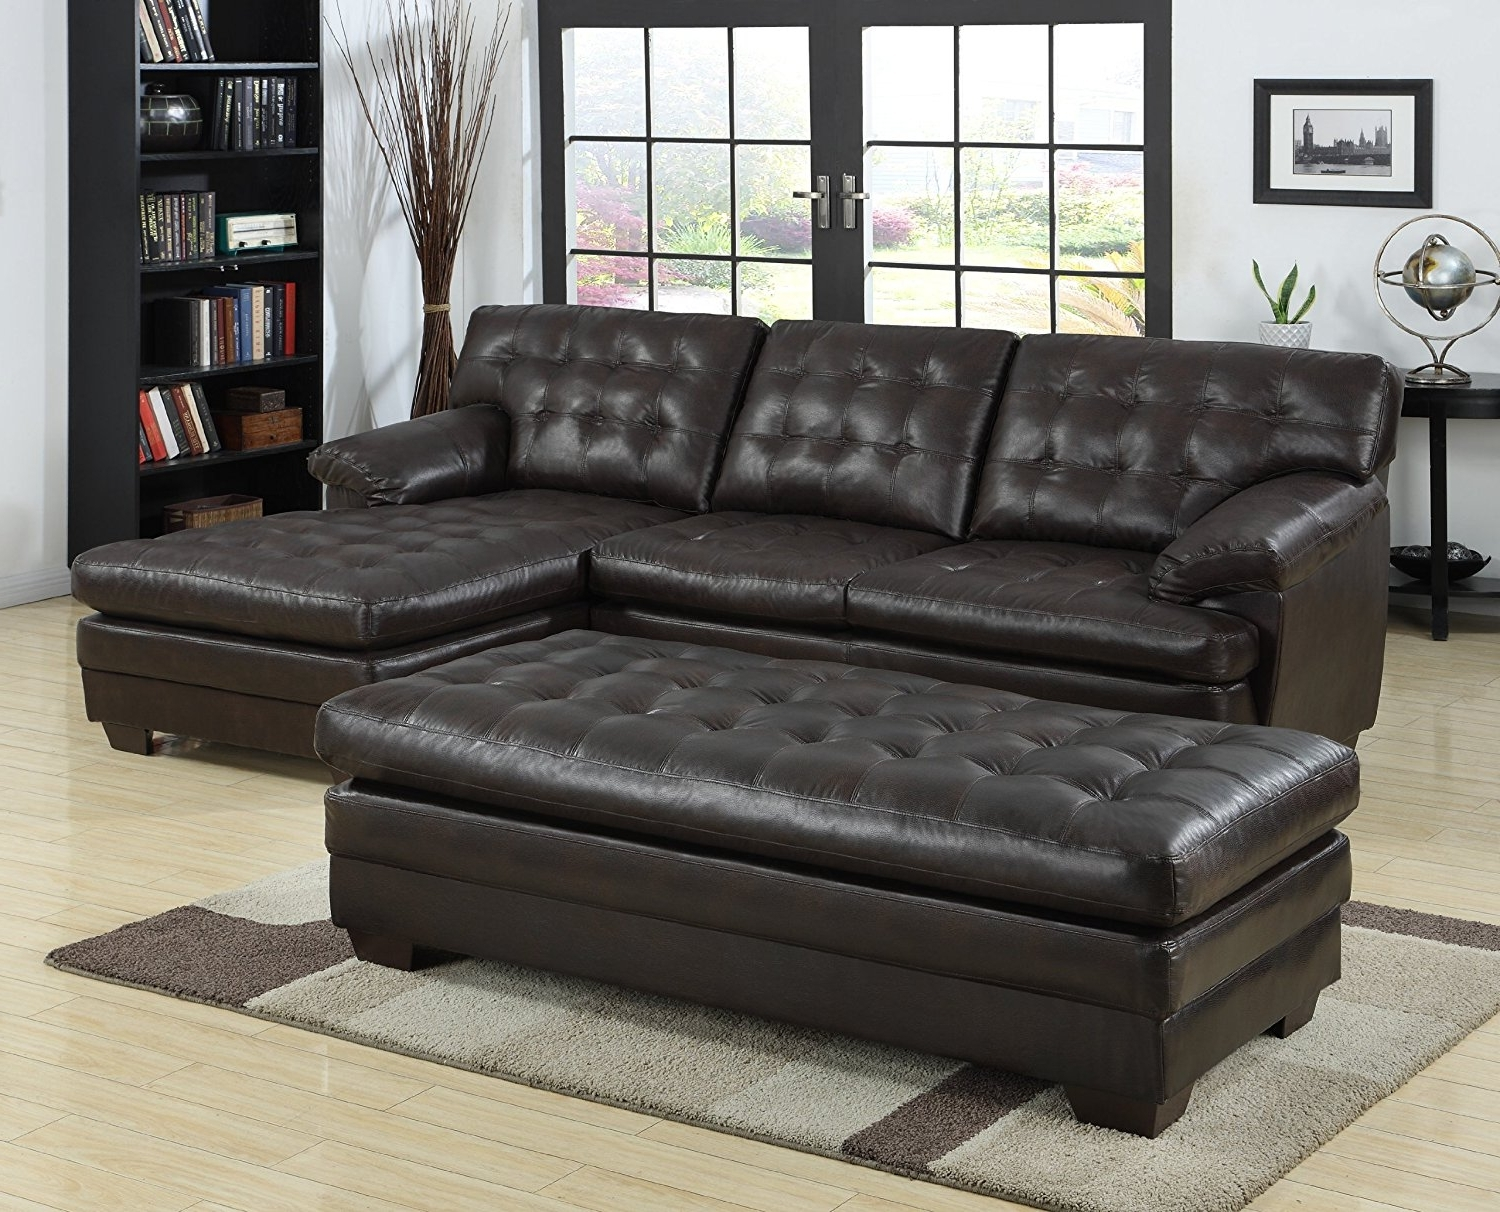 Amazon: Homelegance 9739 Channel Tufted 2 Piece Sectional Sofa In 2018 Leather Sectional Sofas With Chaise (View 2 of 15)